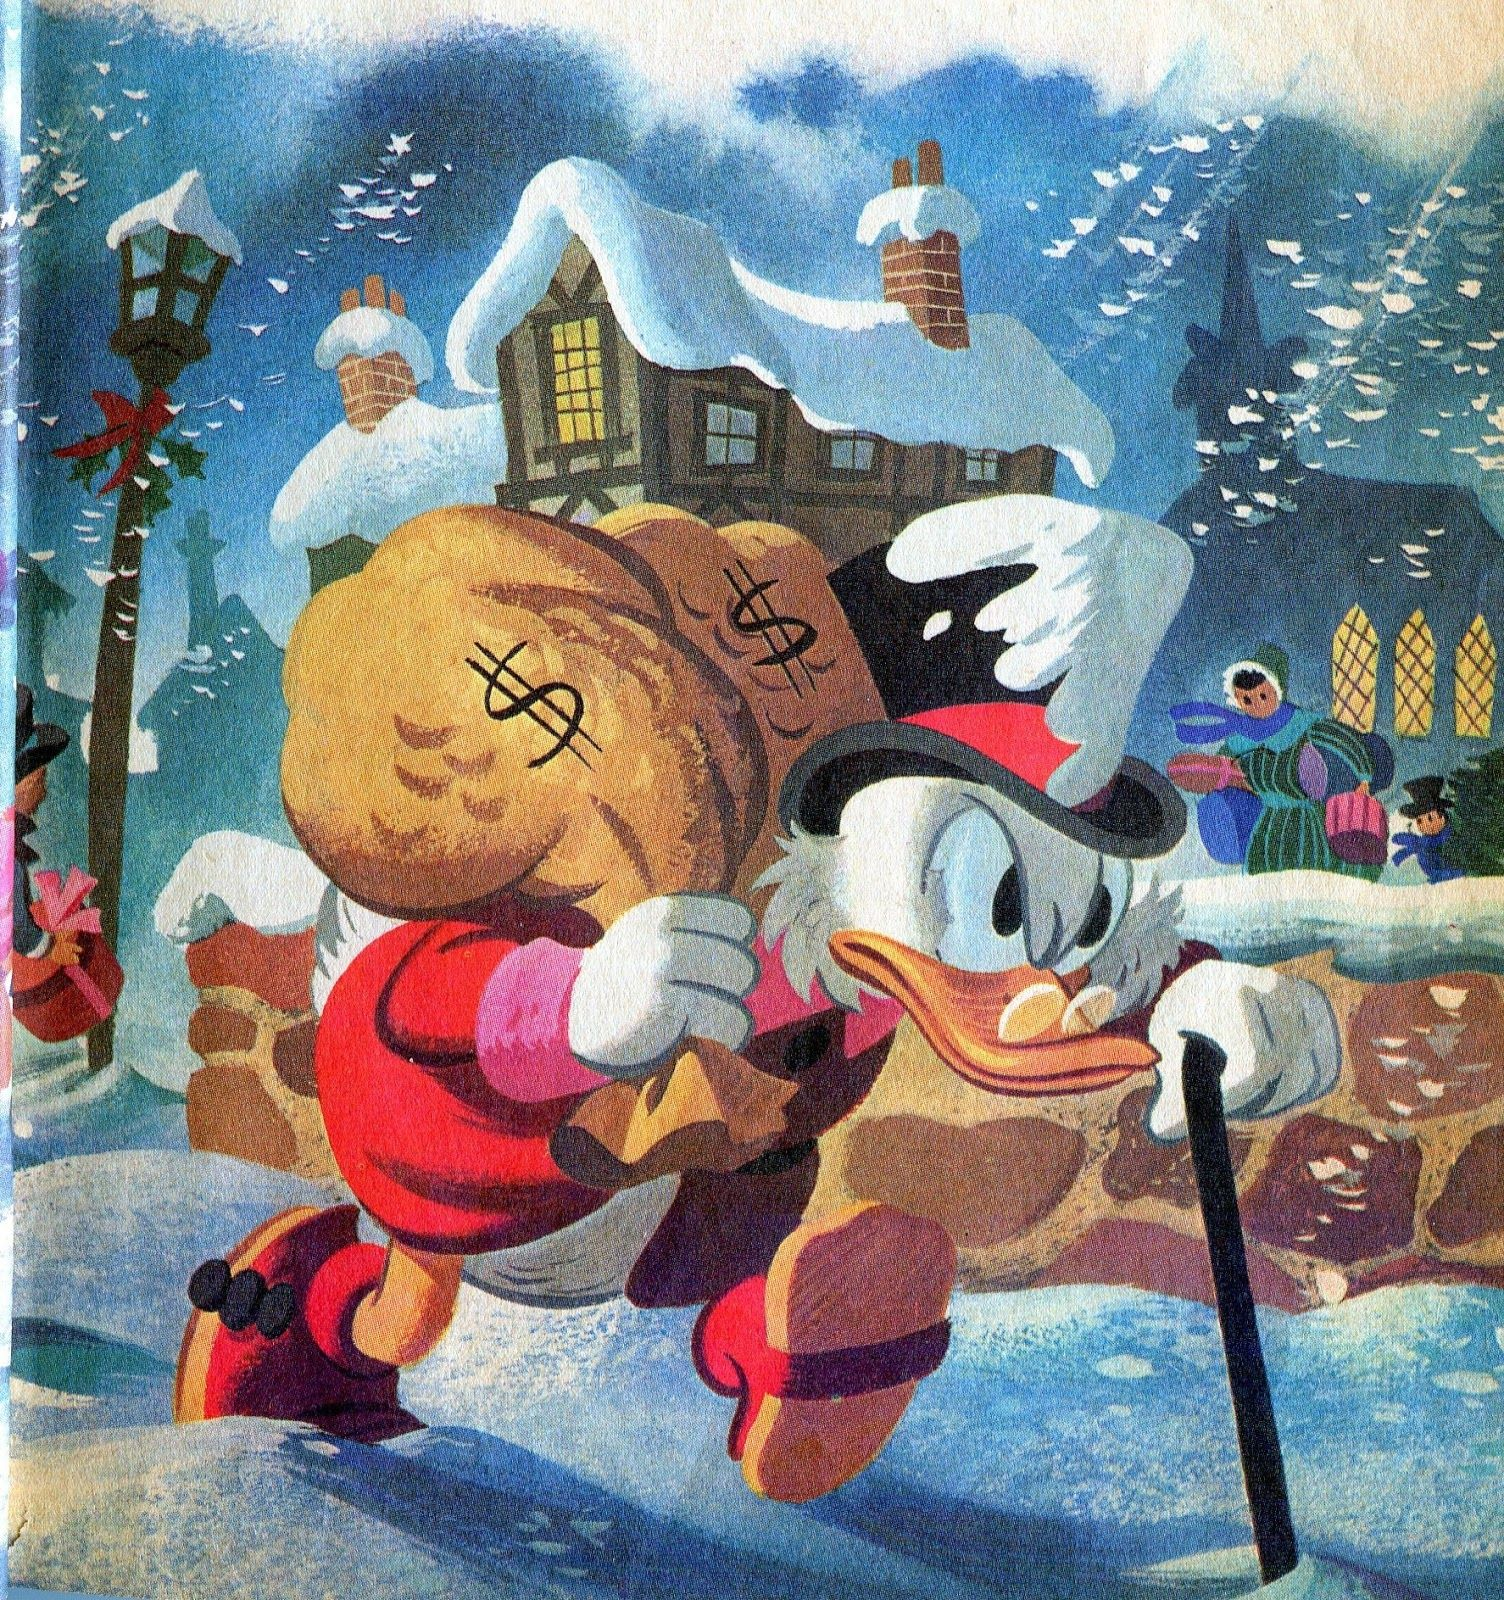 Scrooge Mcduck Christmas.Scrooge Mcduck From The Little Golden Book Donald Duck And